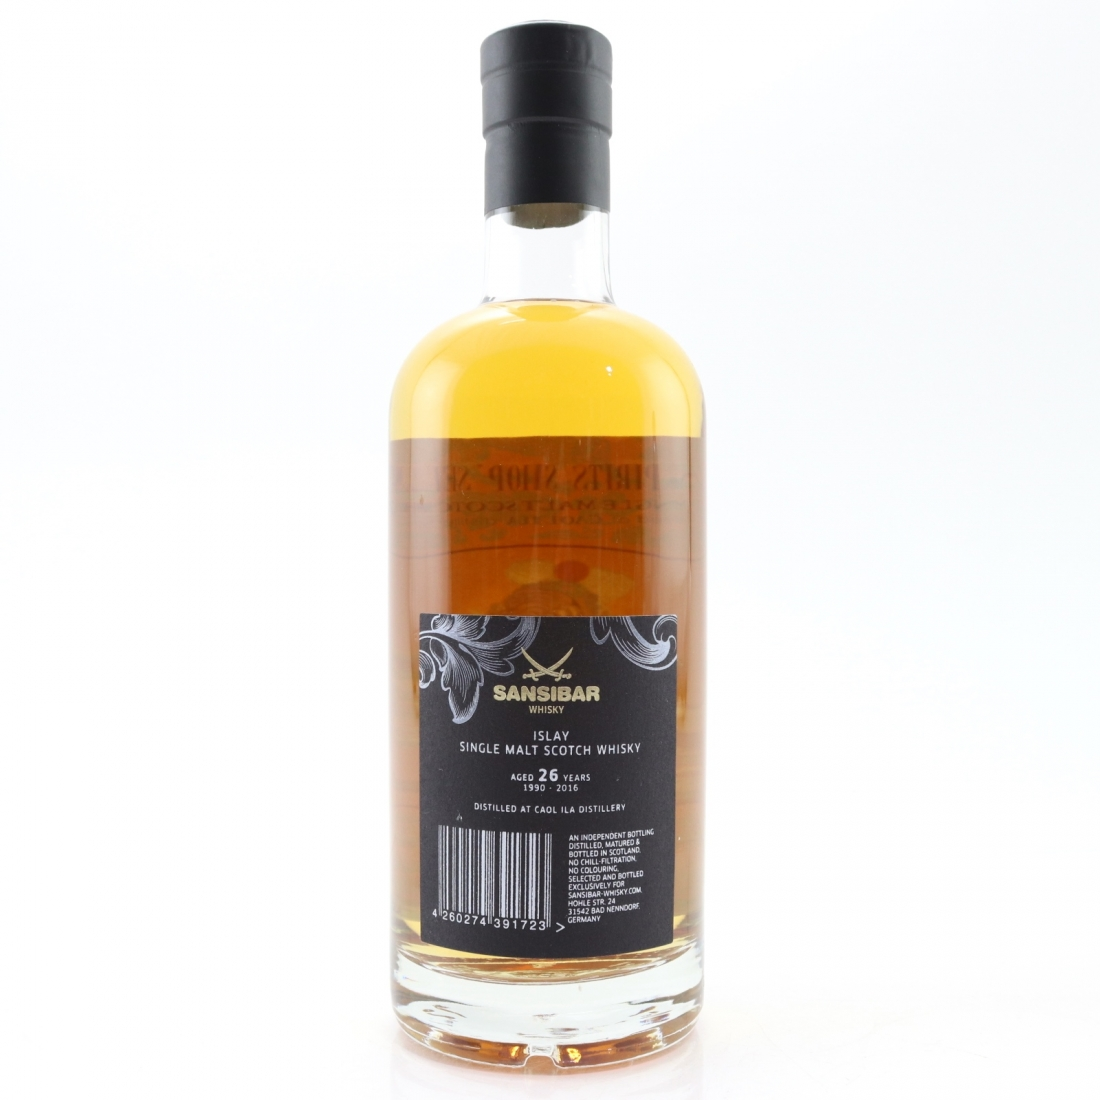 Caol Ila 1990 Sansibar 26 Year Old / Spirts Shop' Selection